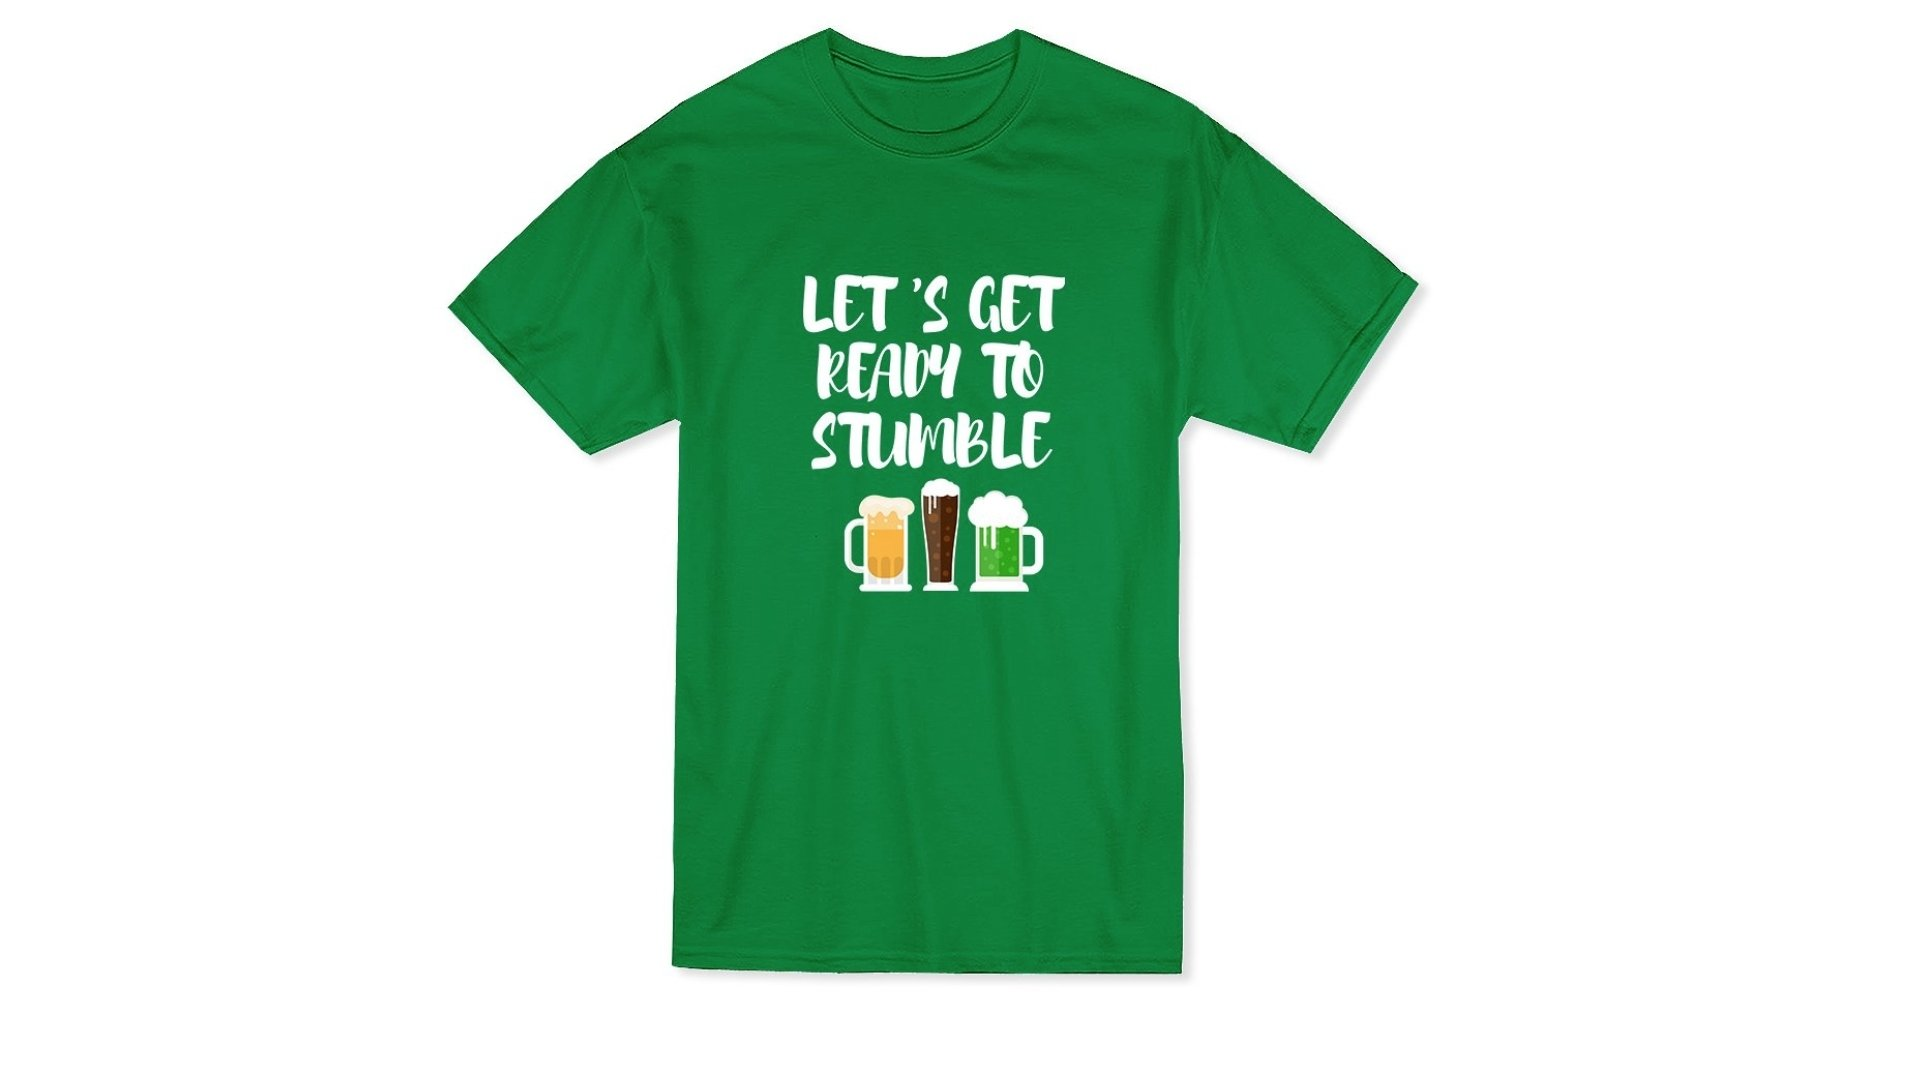 10 Wonderful St Patricks Day Shirt Ideas best st patricks day shirts to wear during a pub crawl